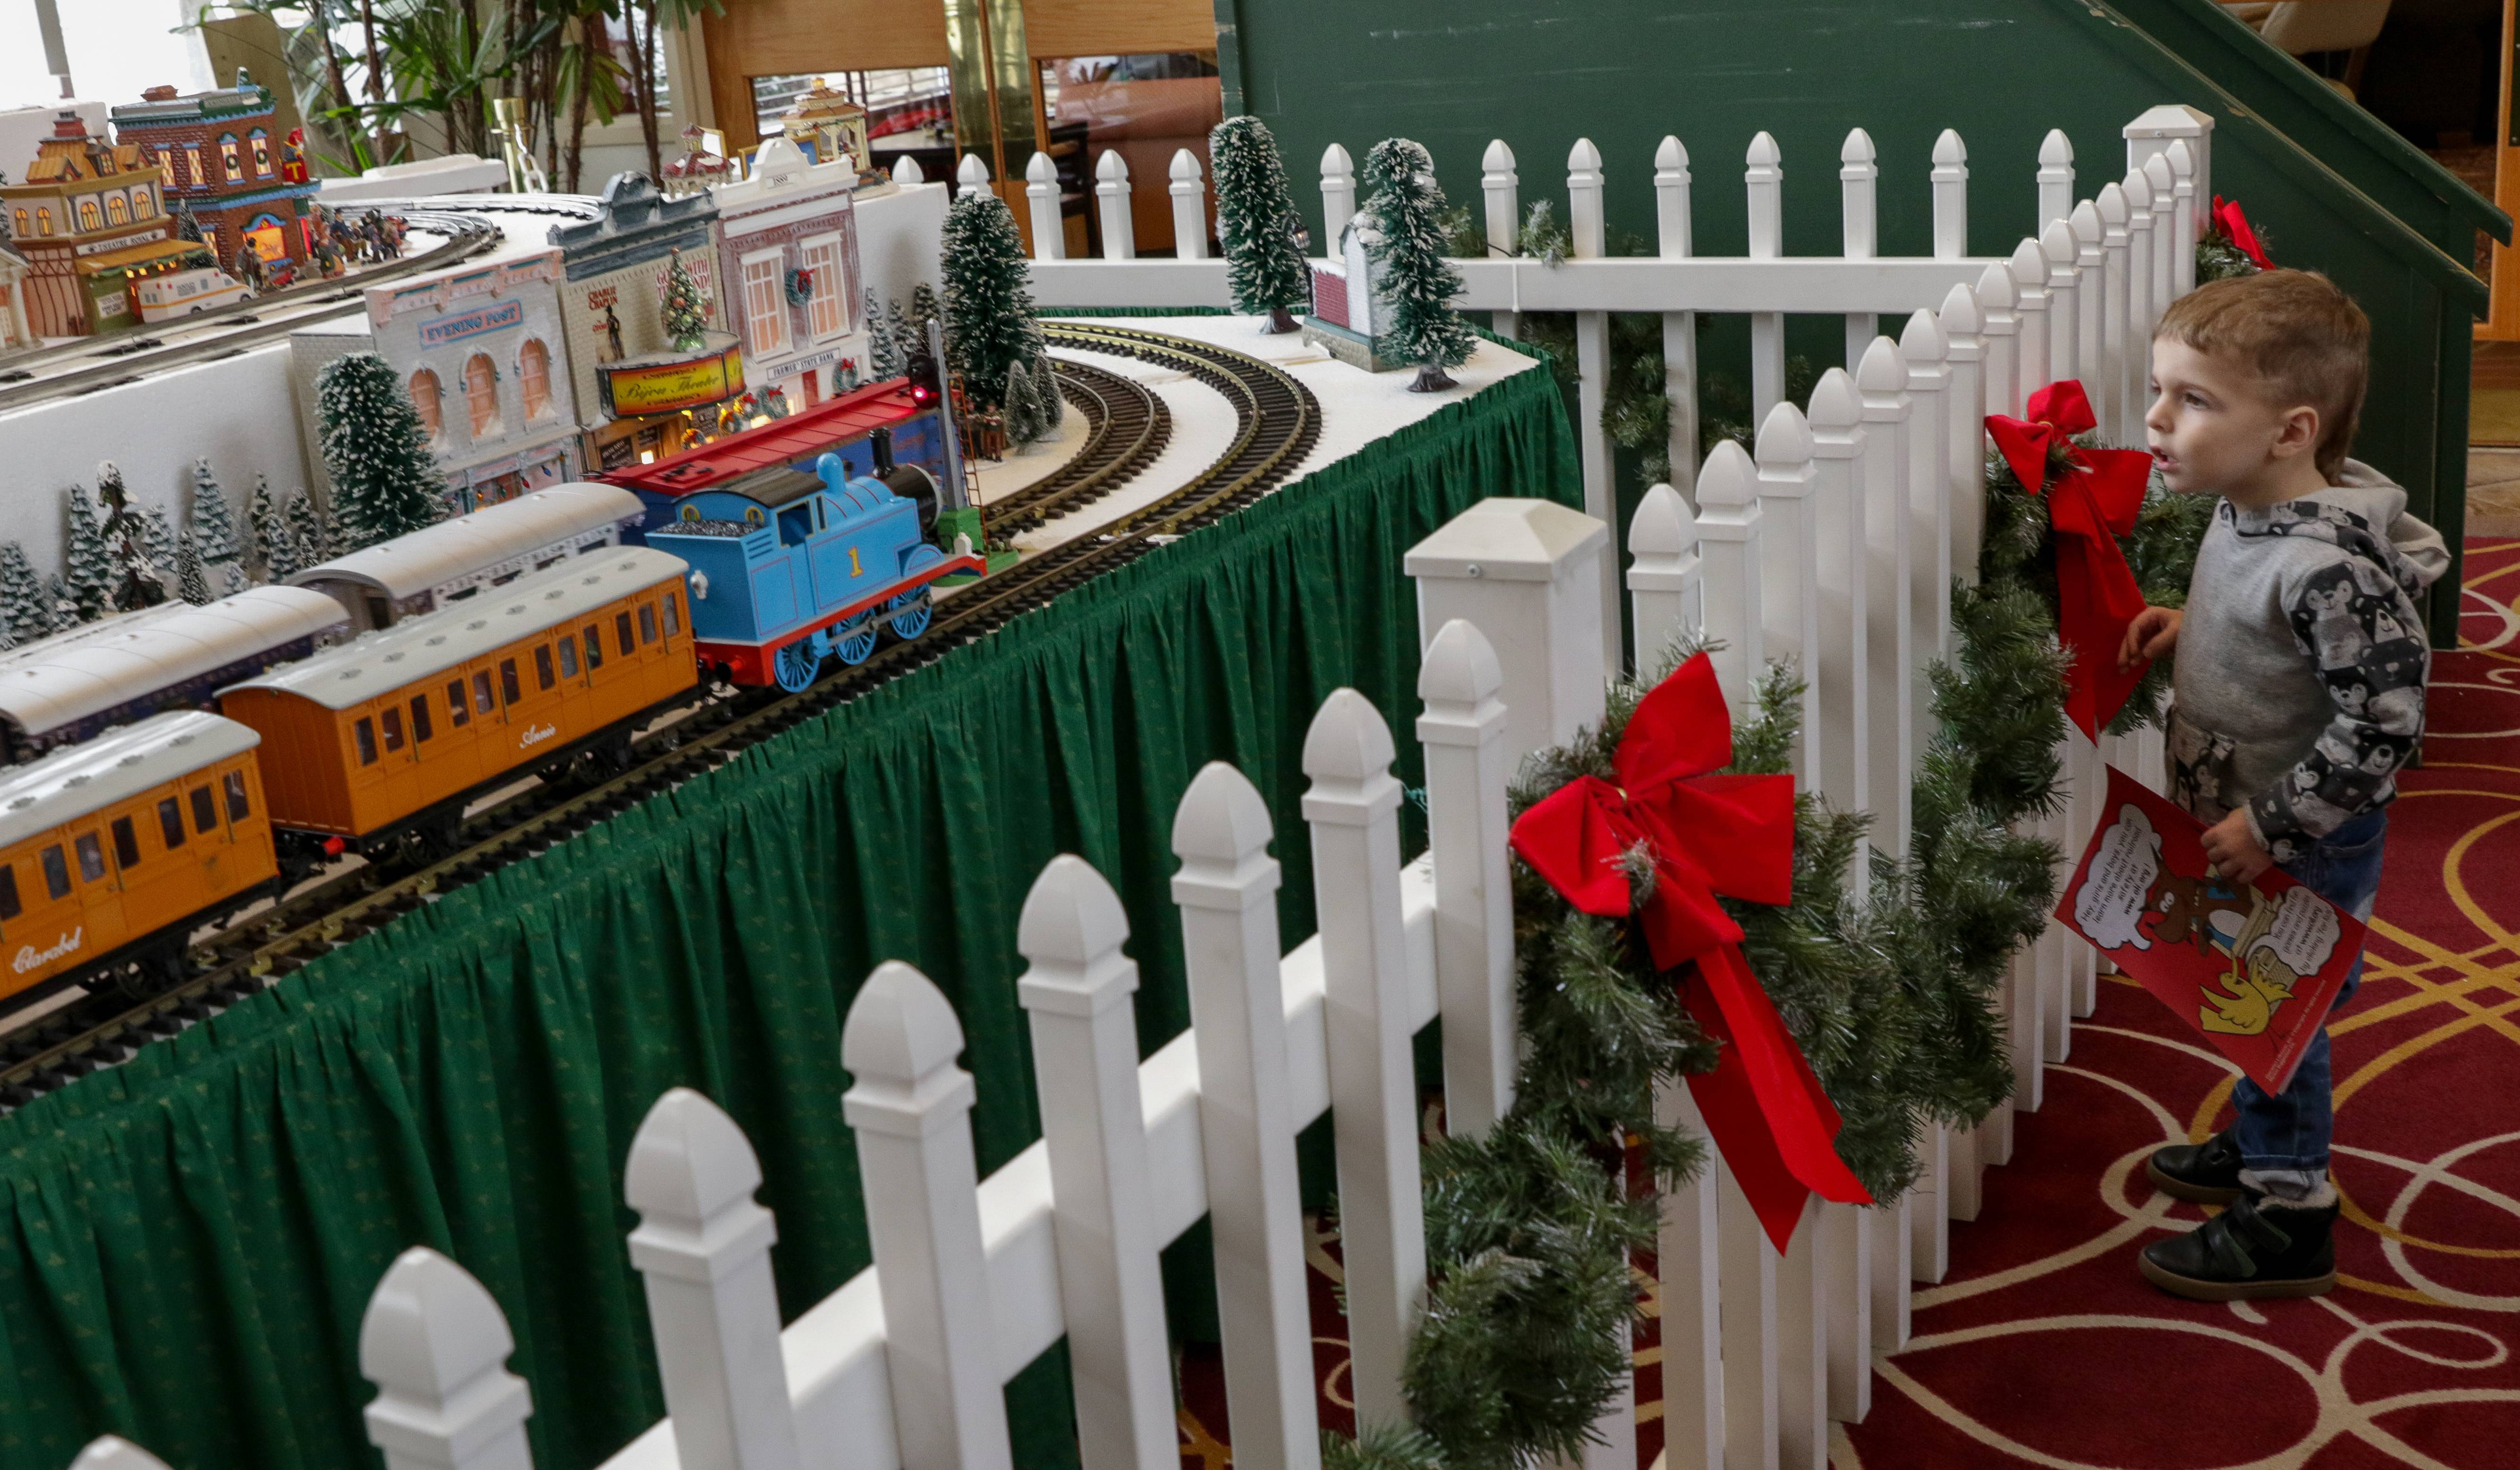 Elliott Bobbe, 2, checks out the holiday train display in the Prairie Lodge at Sun City in Huntley on Sunday. The train is set up by the Kishwaukee Valley and Eakin Creek Model Railroad Club of Sun City. Elliott lives in Kansas and was at Sun City to visiting his grandparents.